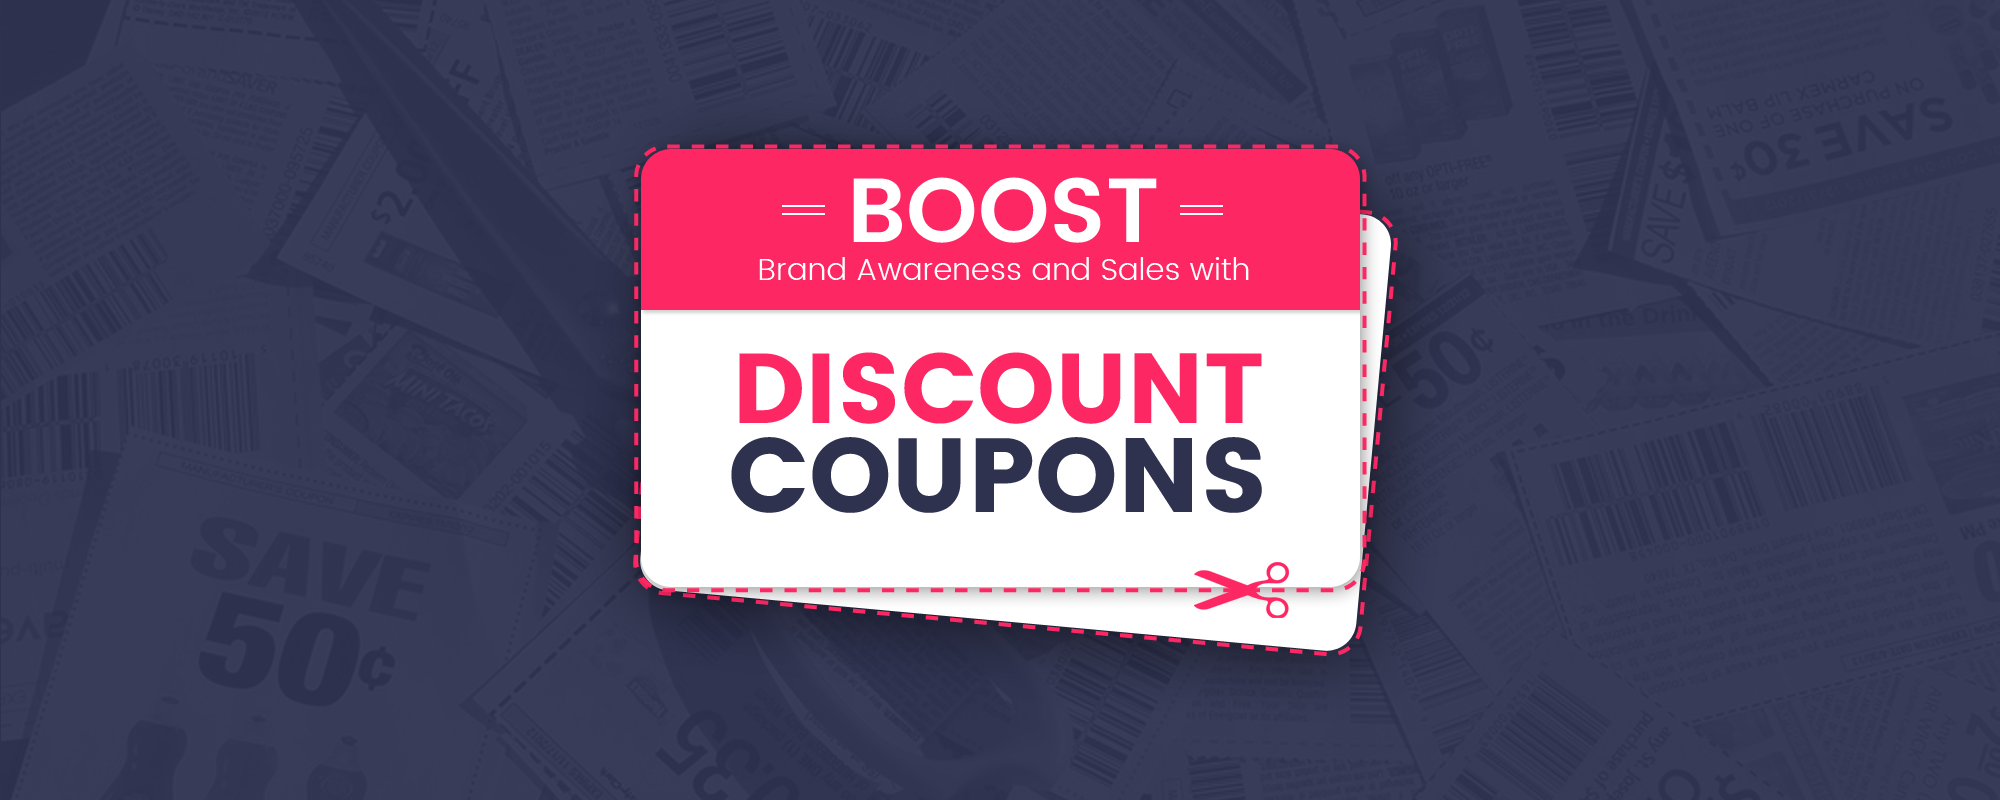 4 Ways Discount Coupons Can Boost Engagement, Sales, & Brand Awareness